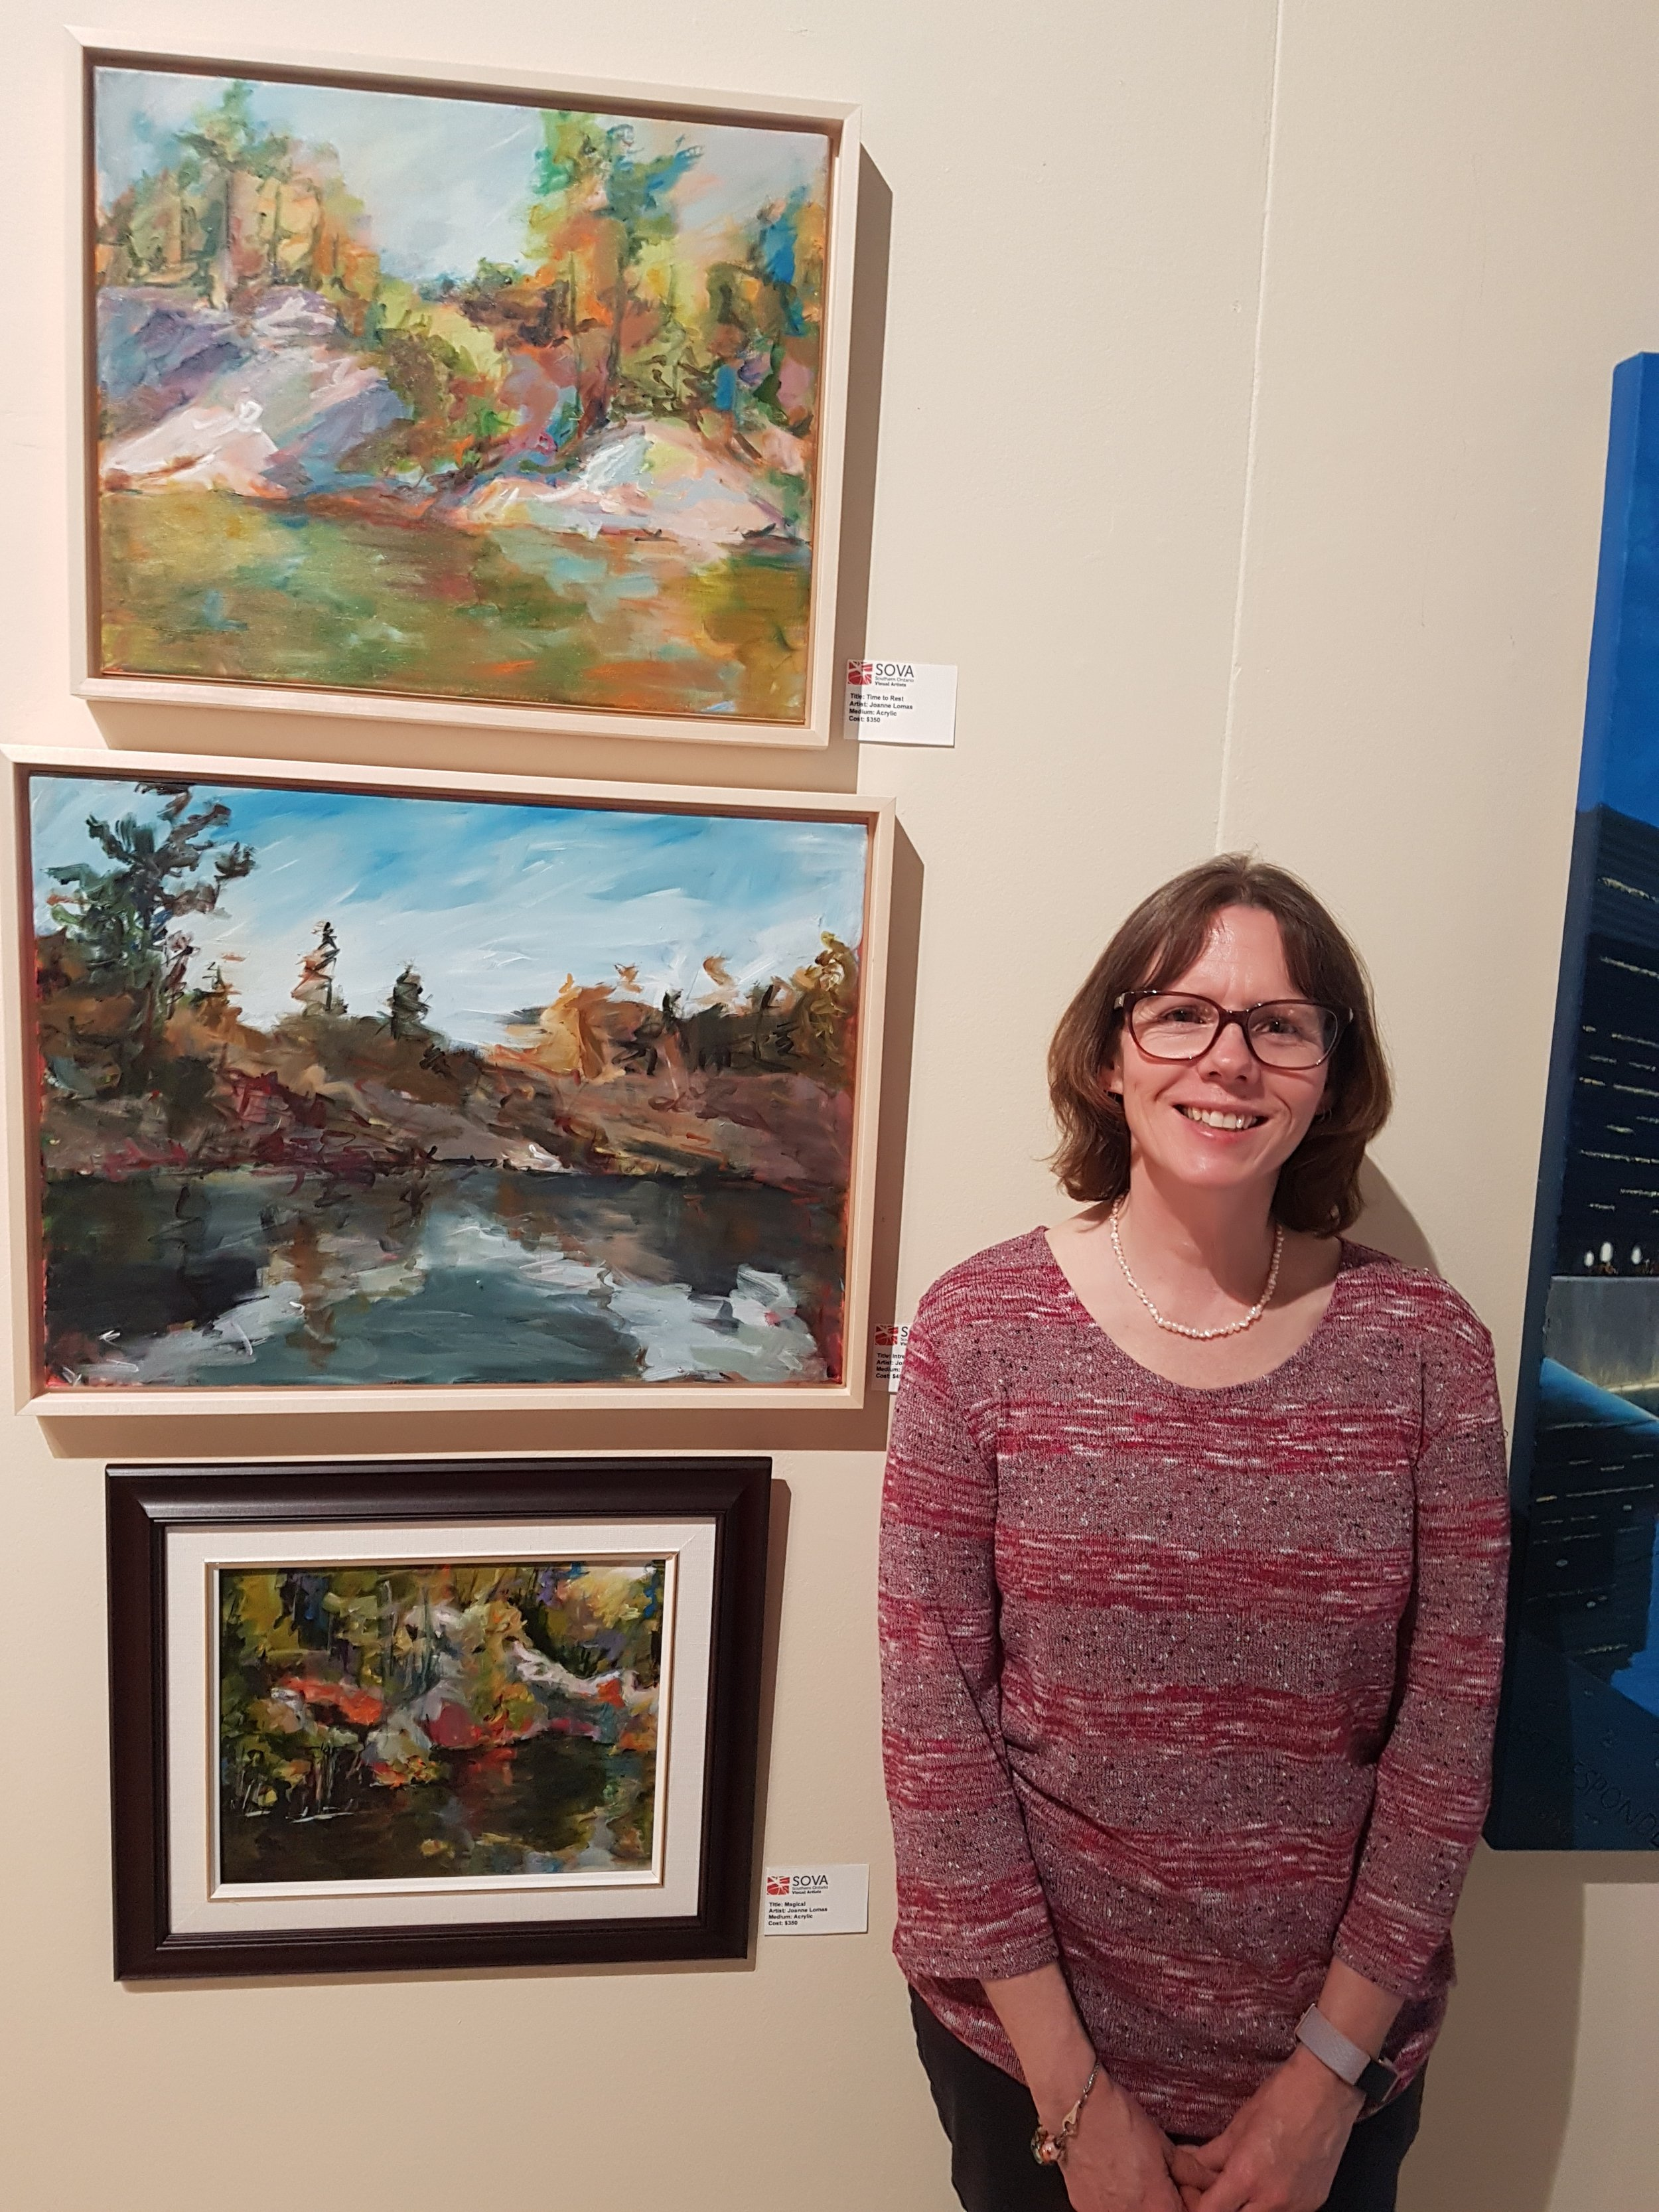 - Here you see Artist Joanne Lomas with her artwork at the Joseph D. Carrier Gallery.